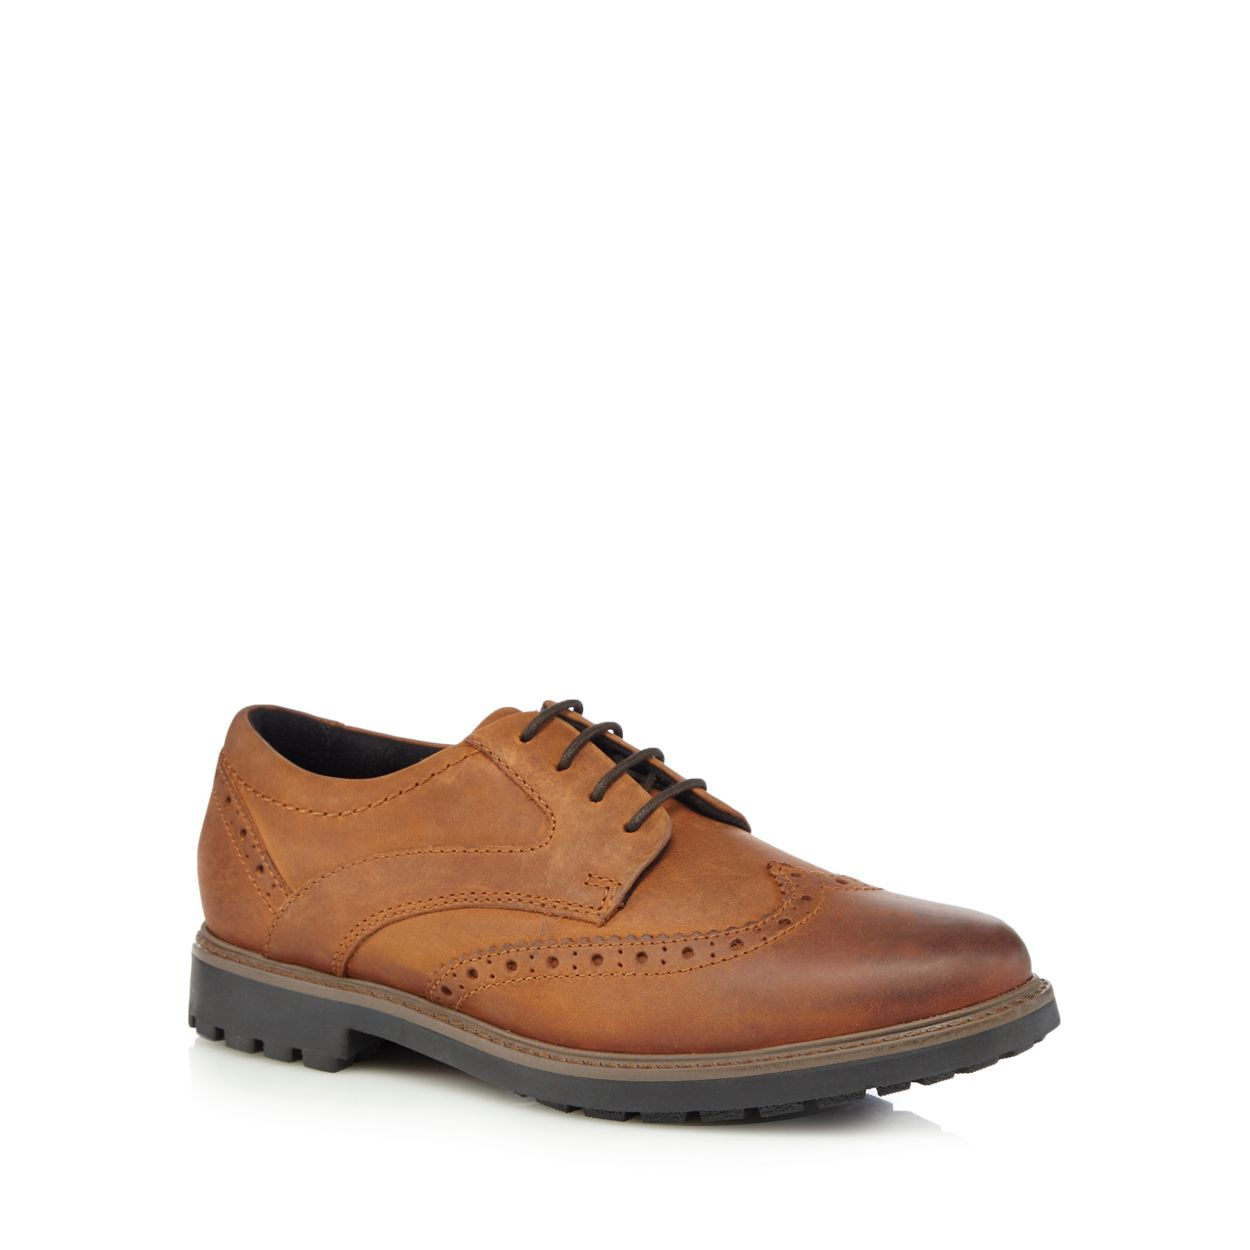 Maine New England Tan leather brogues